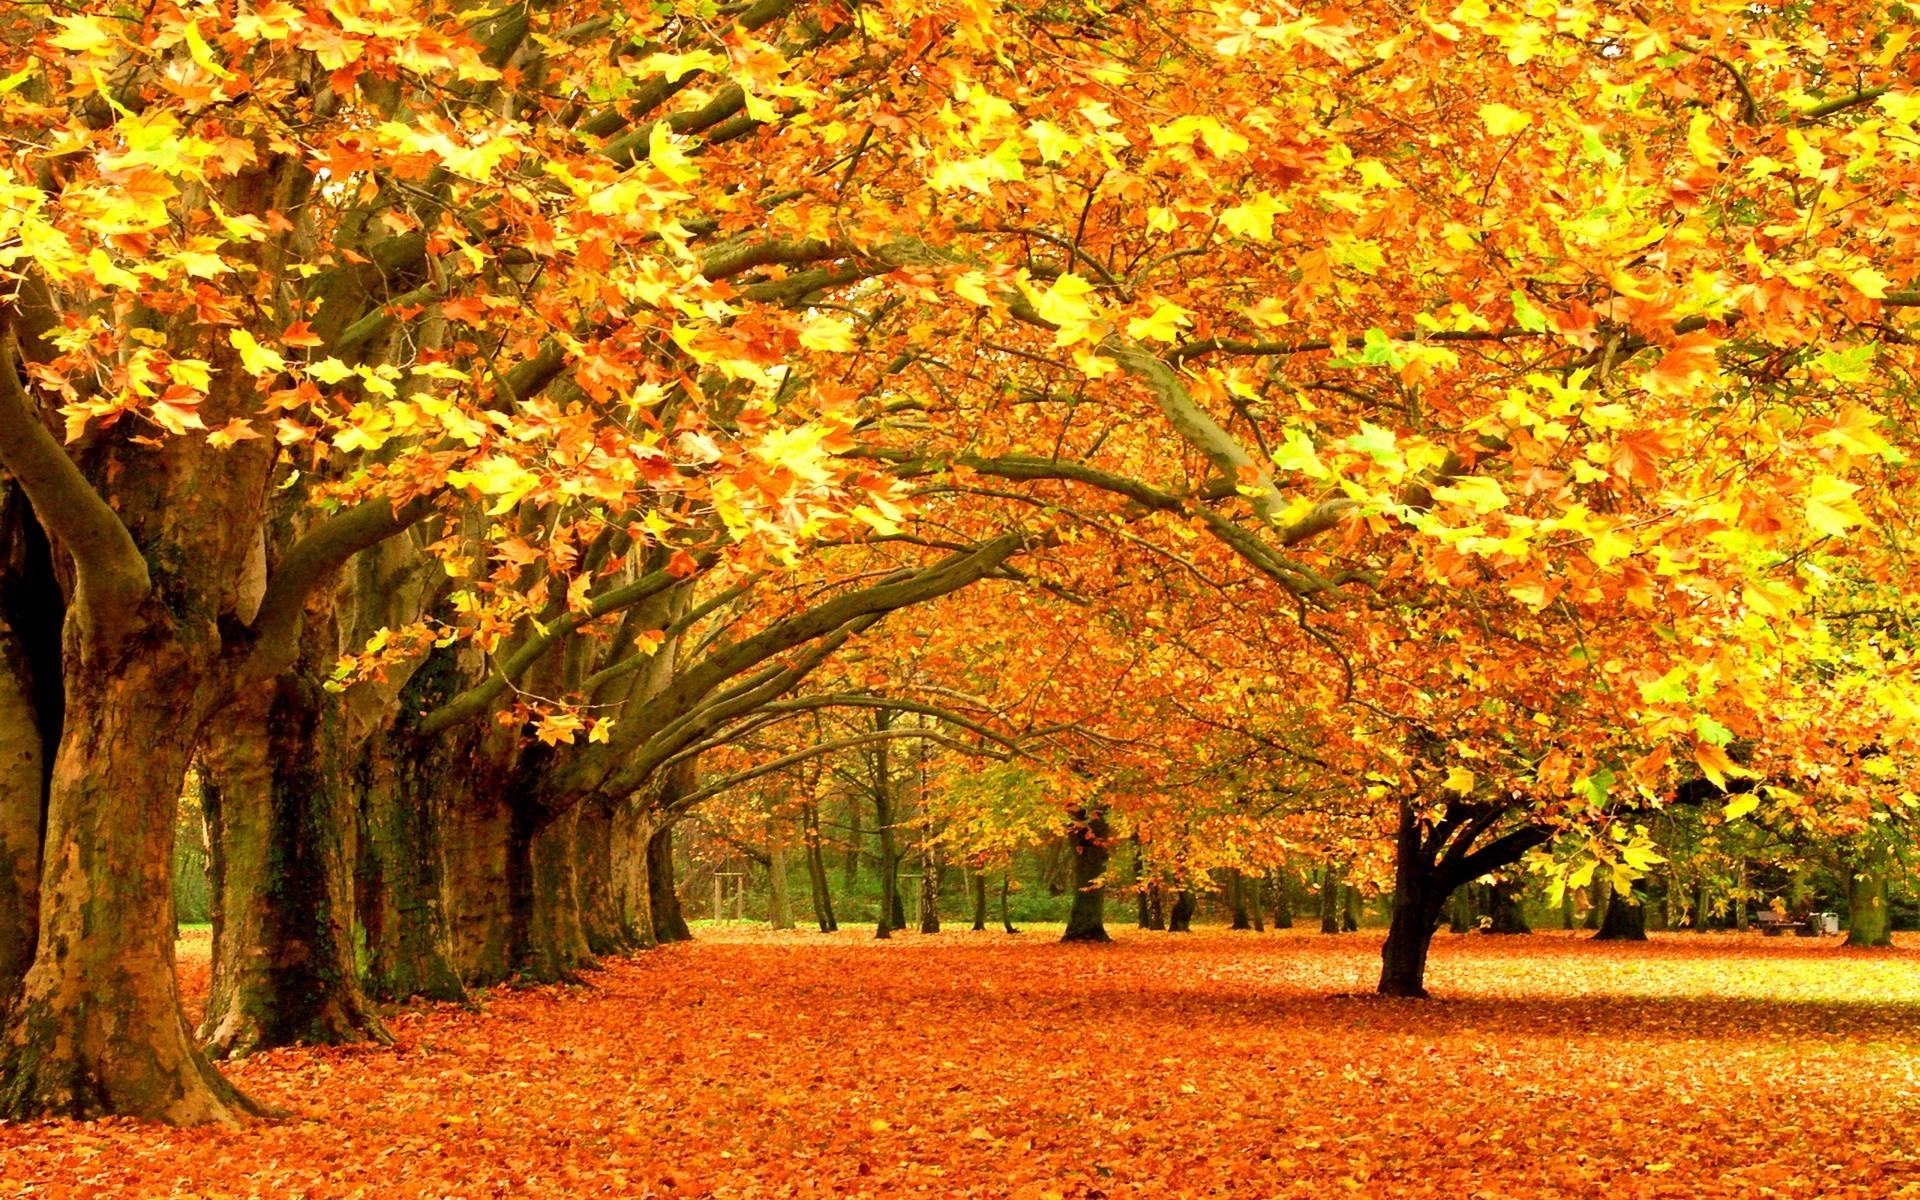 10 Top Fall Leaves Wallpaper For Desktop FULL HD 1080p For PC Background